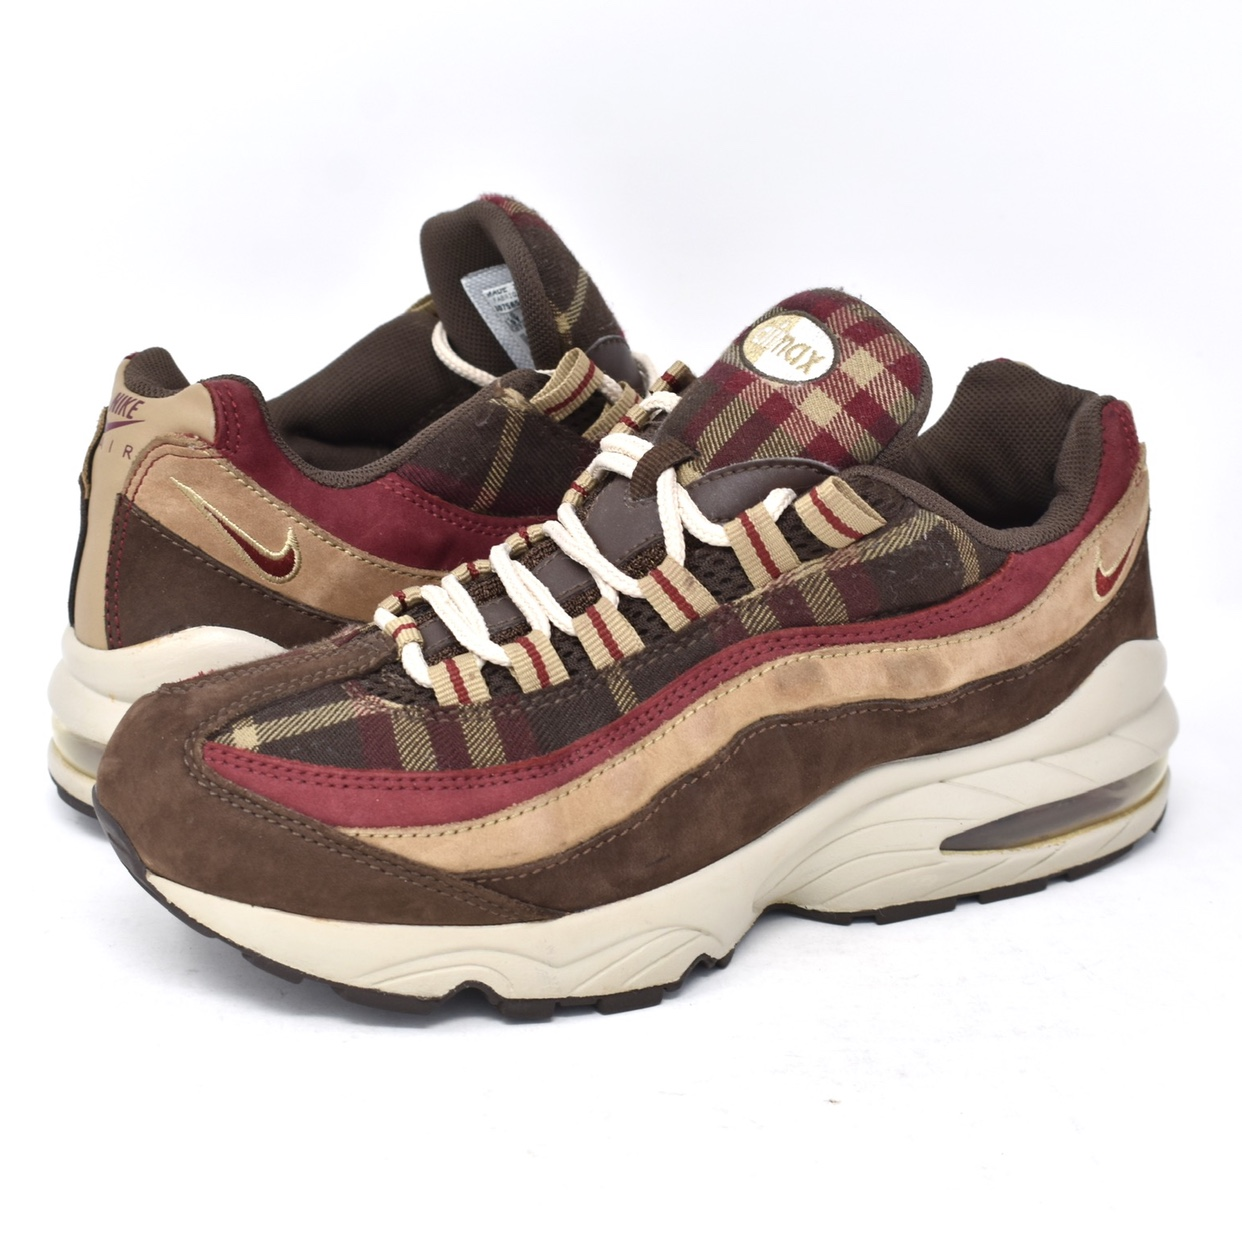 "Air Max Plaid""Size Depop 95 Nike ""burgundy 2006 5 5yUs 534AjRLq"